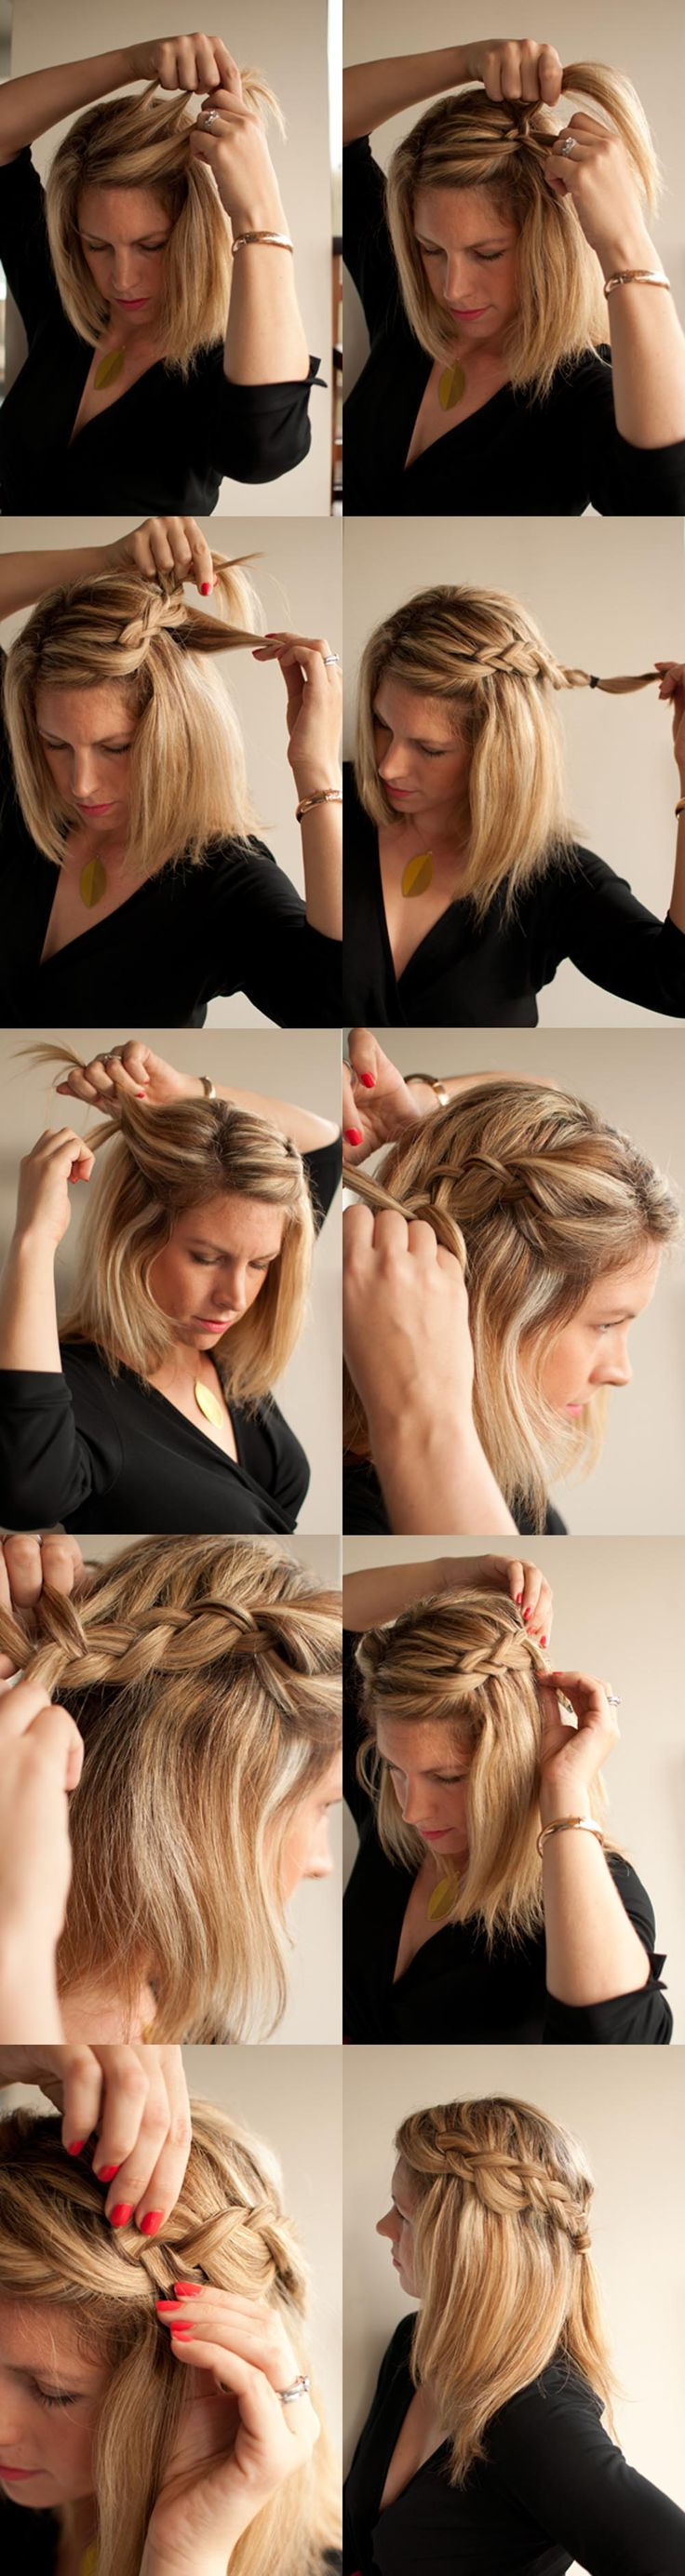 How to braid hairstyle steps: Easy Hairstyles, Braids Hairstyles, Best Hairstyles, Braided Hairstyles Tutorials, Hairstyle Tutorials, Creative Hairstyles, Summer Hairstyles, Cute Hairstyles, Side Braid Hairstyles